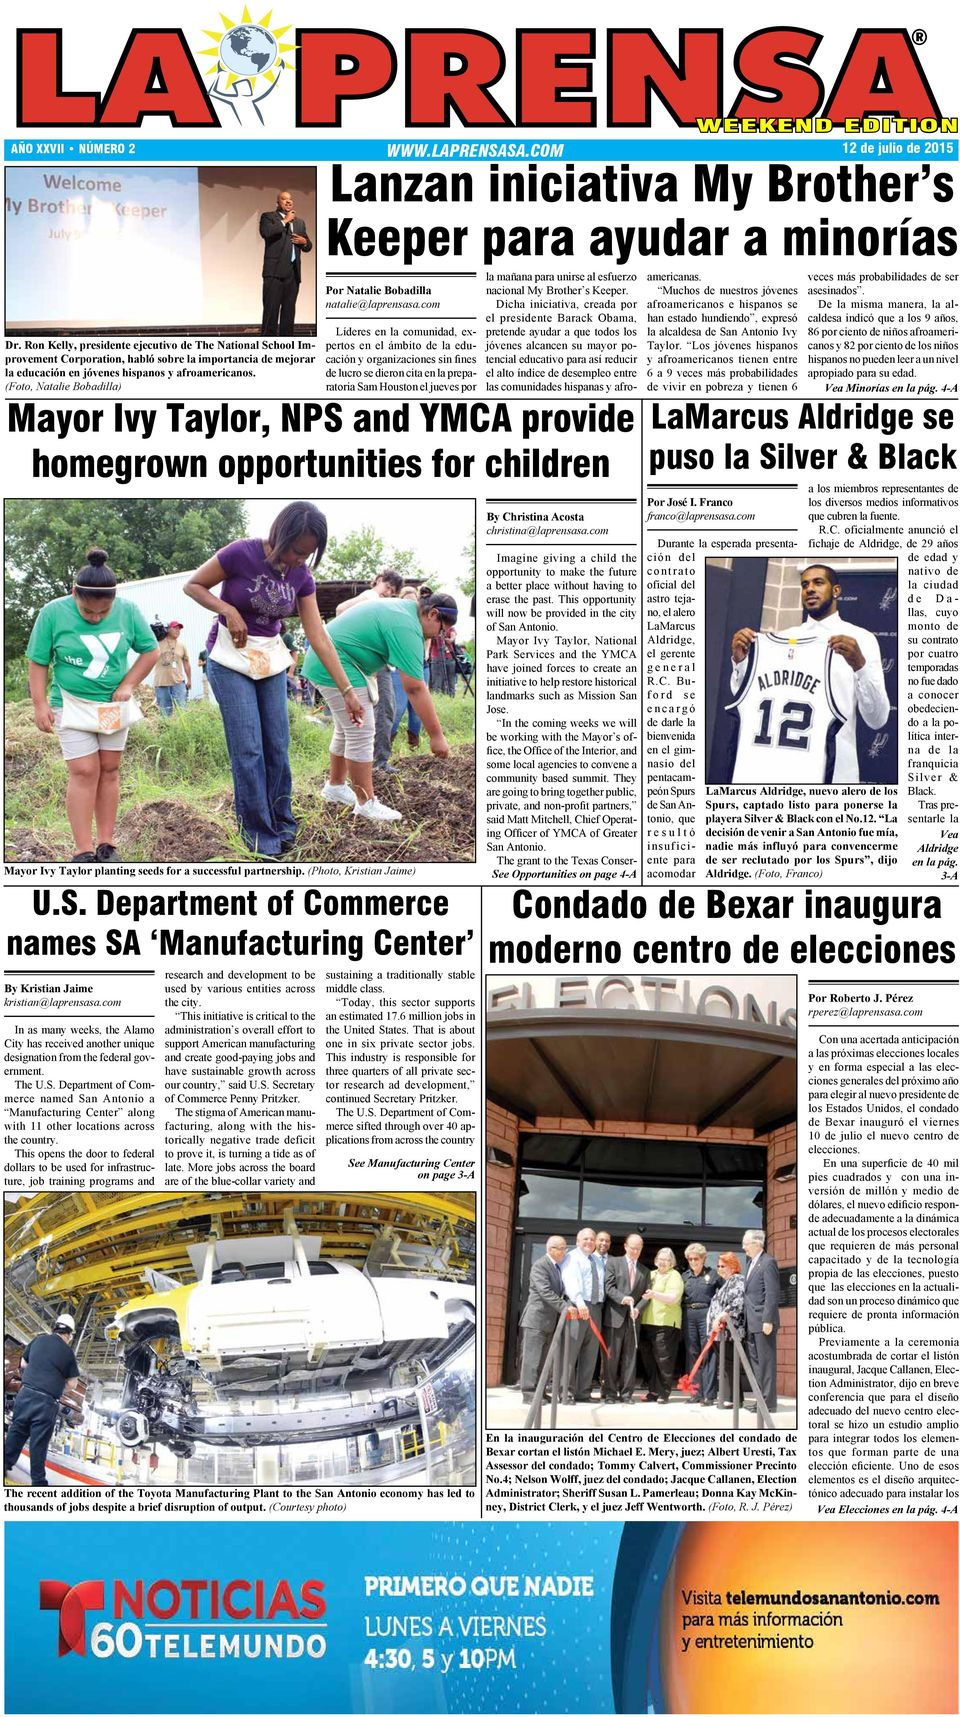 (Foto, Natalie Bobadilla) Mayor Ivy Taylor, NPS and YMCA provide homegrown opportunities for children Mayor Ivy Taylor planting seeds for a successful partnership. (Photo, Kristian Jaime) U.S. Department of Commerce names SA Manufacturing Center By Kristian Jaime kristian@laprensasa.